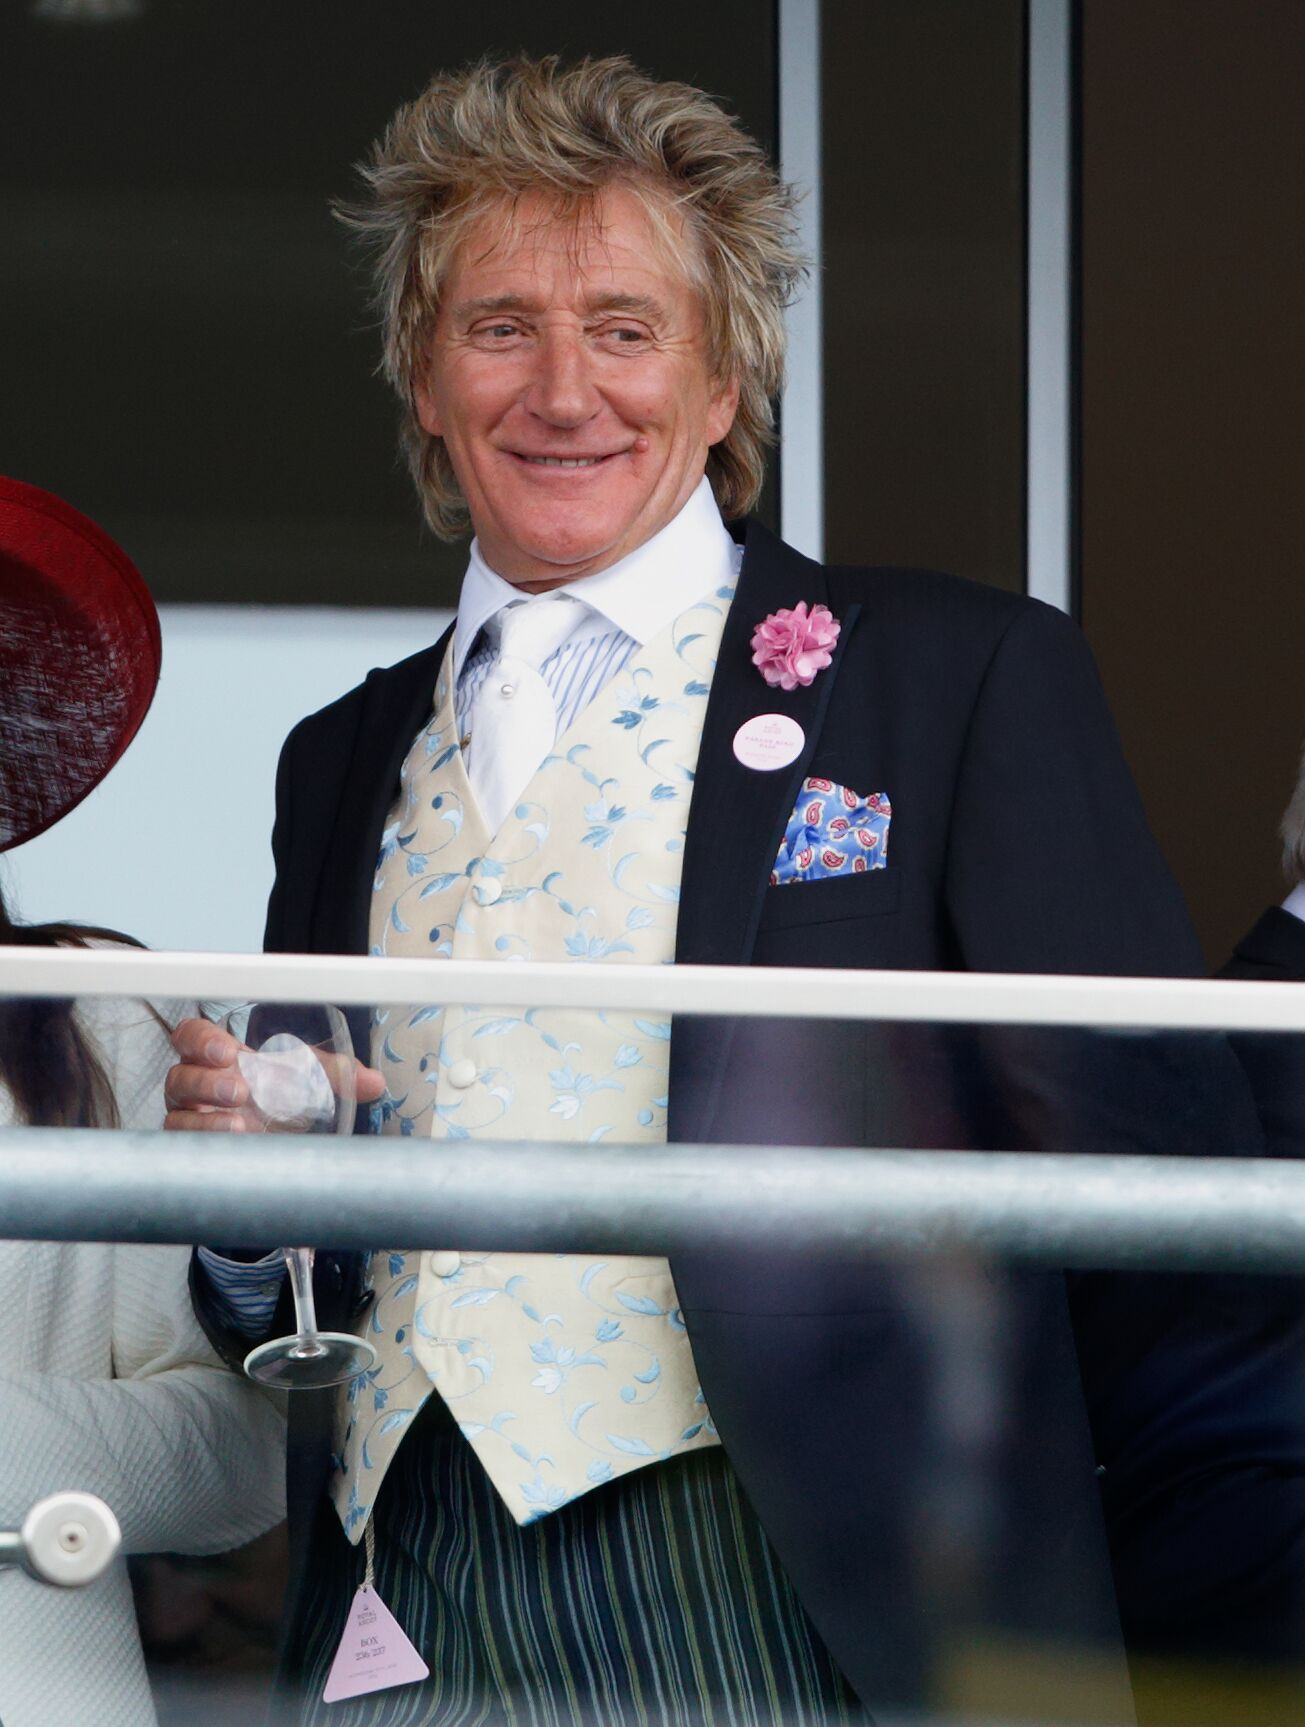 Sir Rod Stewart attends day 2 of the Royal Ascot at Ascot Racecourse on June 15, 2016 in England Photo Getty Images